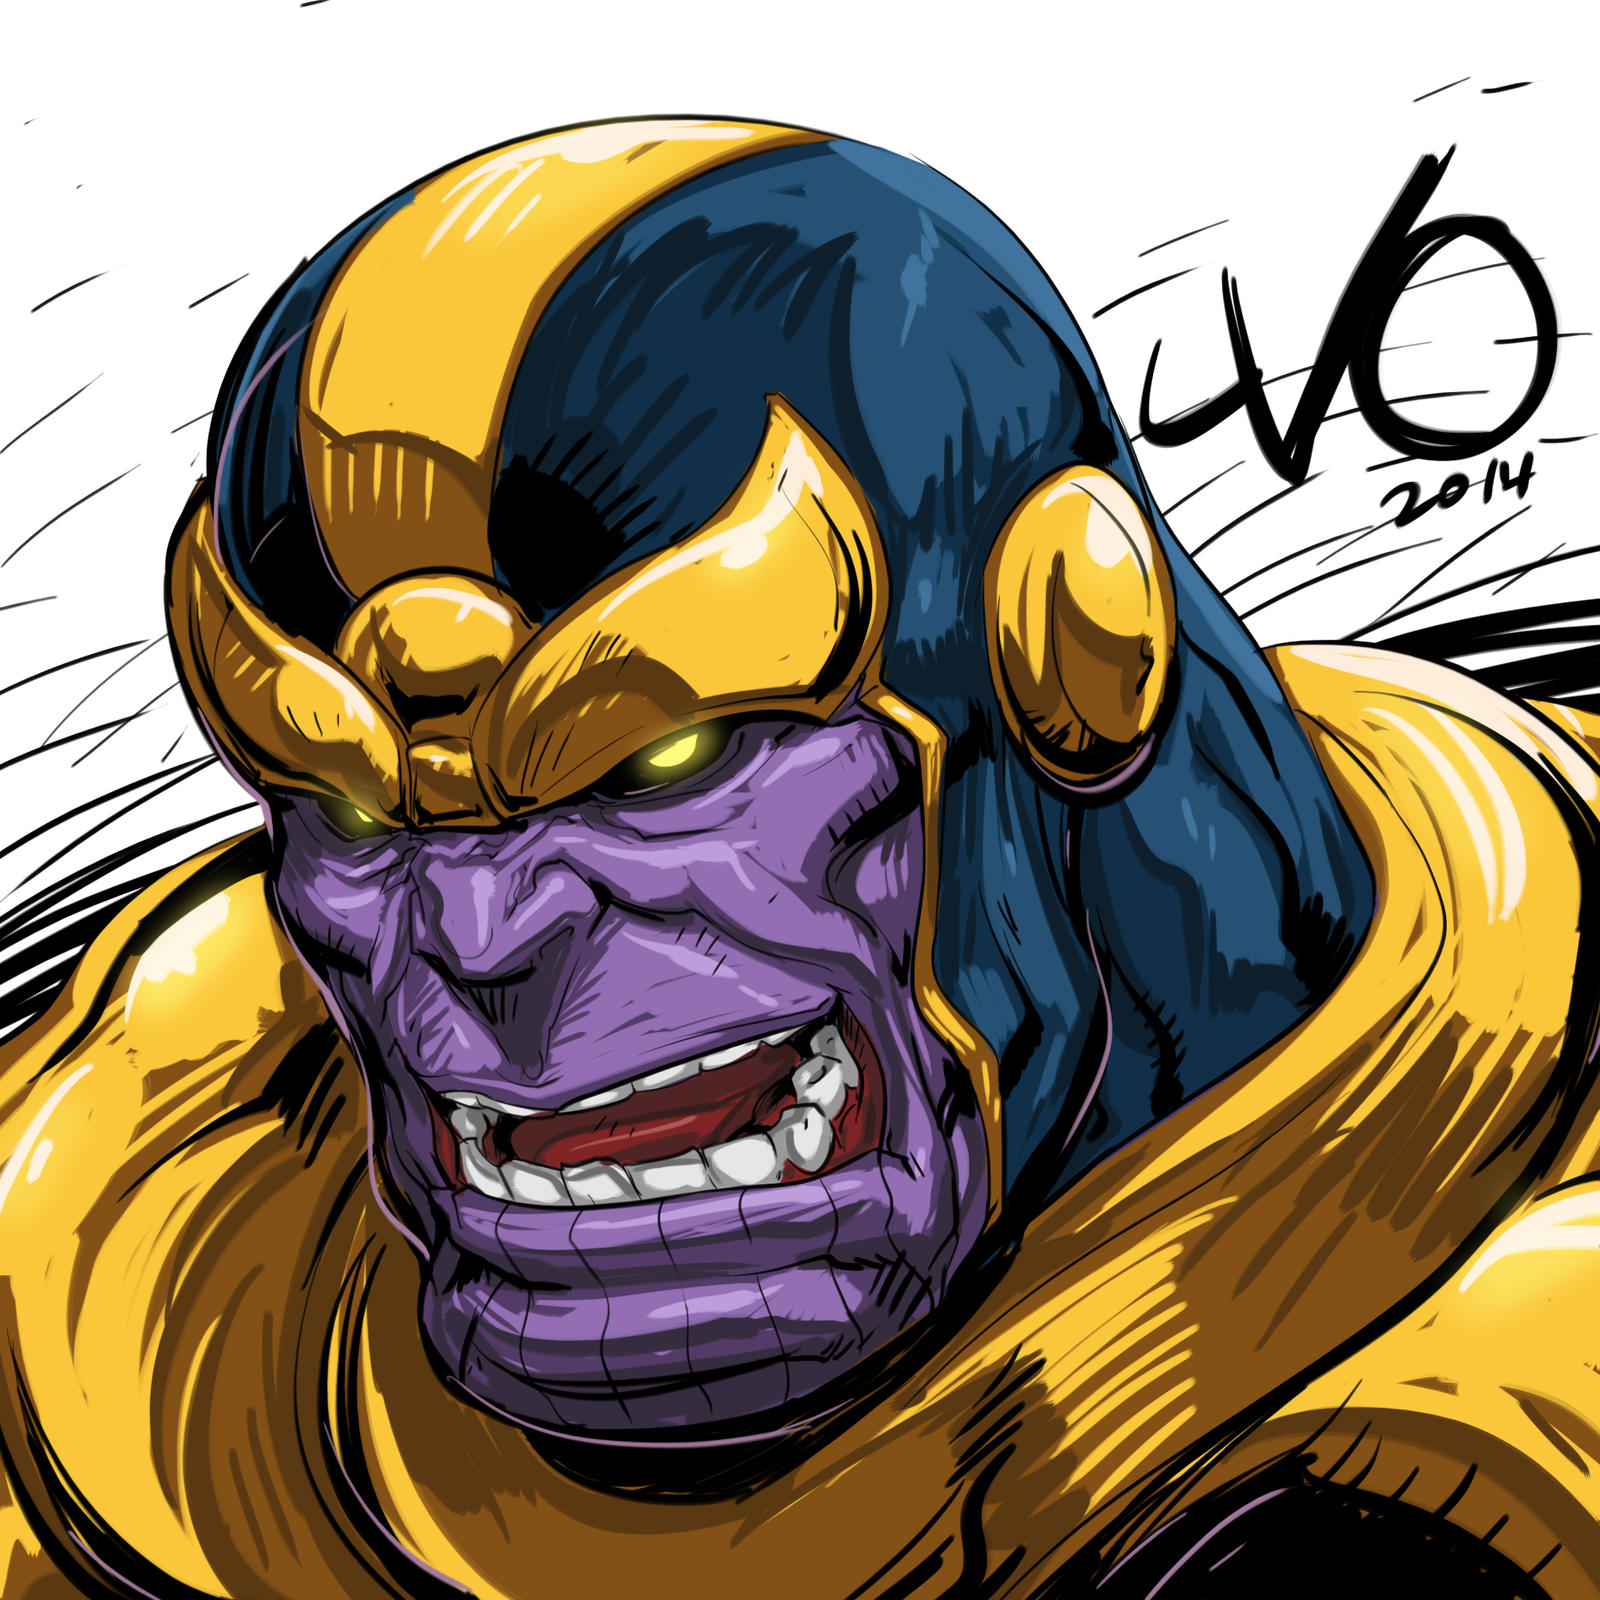 Anime Characters Vs Thanos : Digital sketch warm up thanos by vostalgic on deviantart